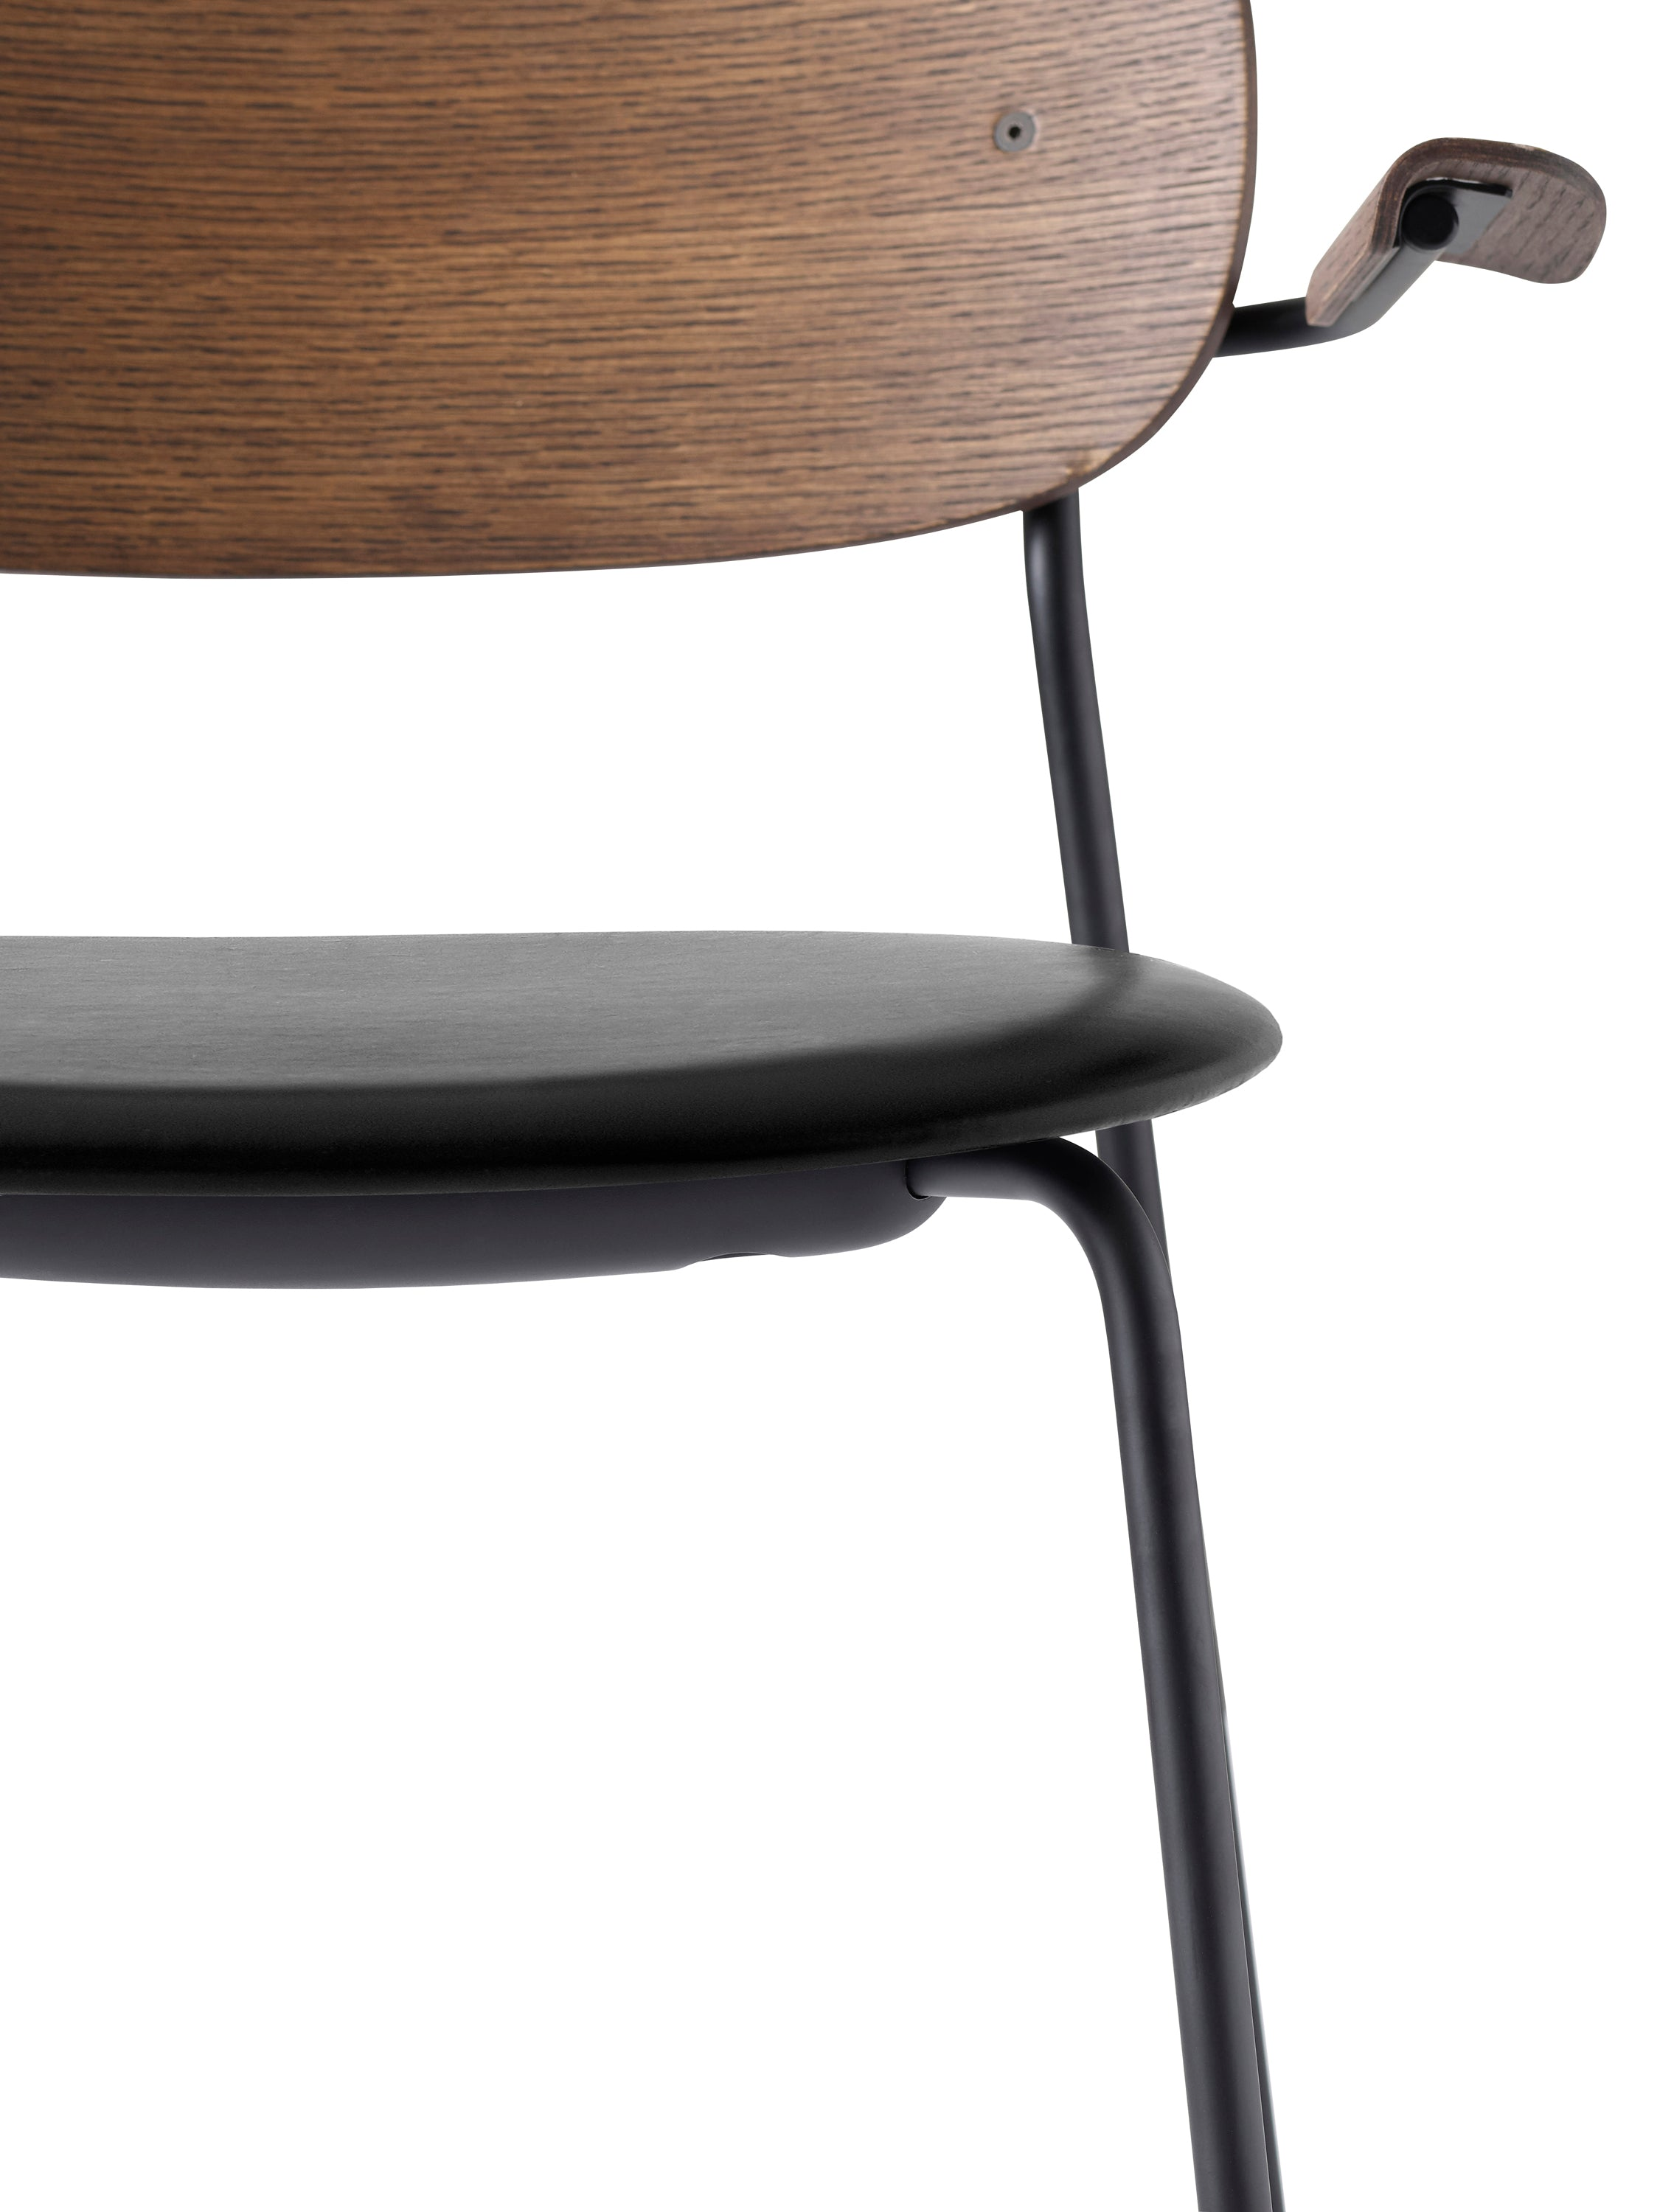 Co Chair Dining - Black Steel Base, Dakar 0842 Seat/Dark Stained Oak Back, w/Arms fra Menu